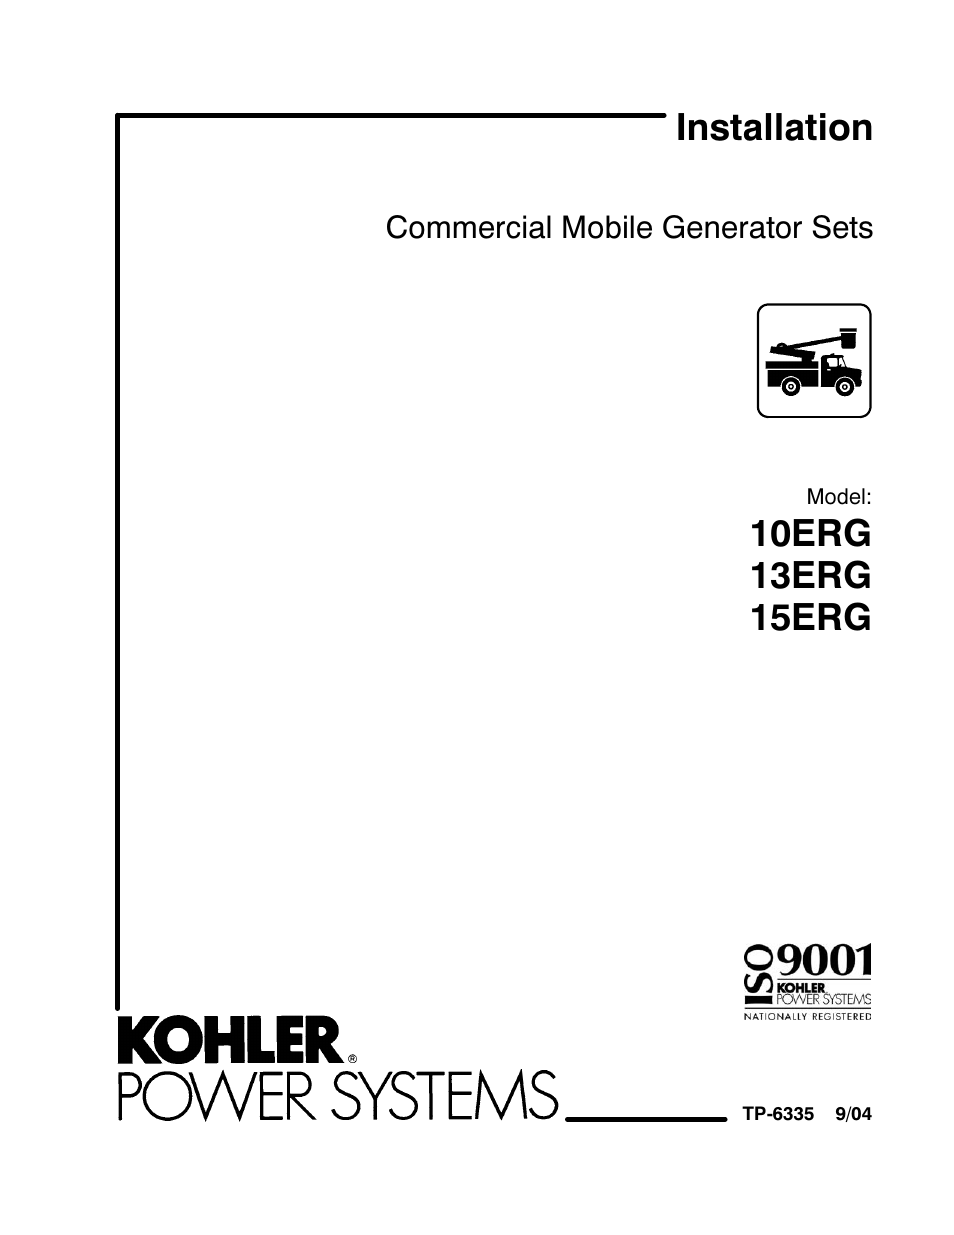 Kohler 13erg User Manual 52 Pages Also For 10erg 15erg Commercial Service Entrance Wiring Diagram